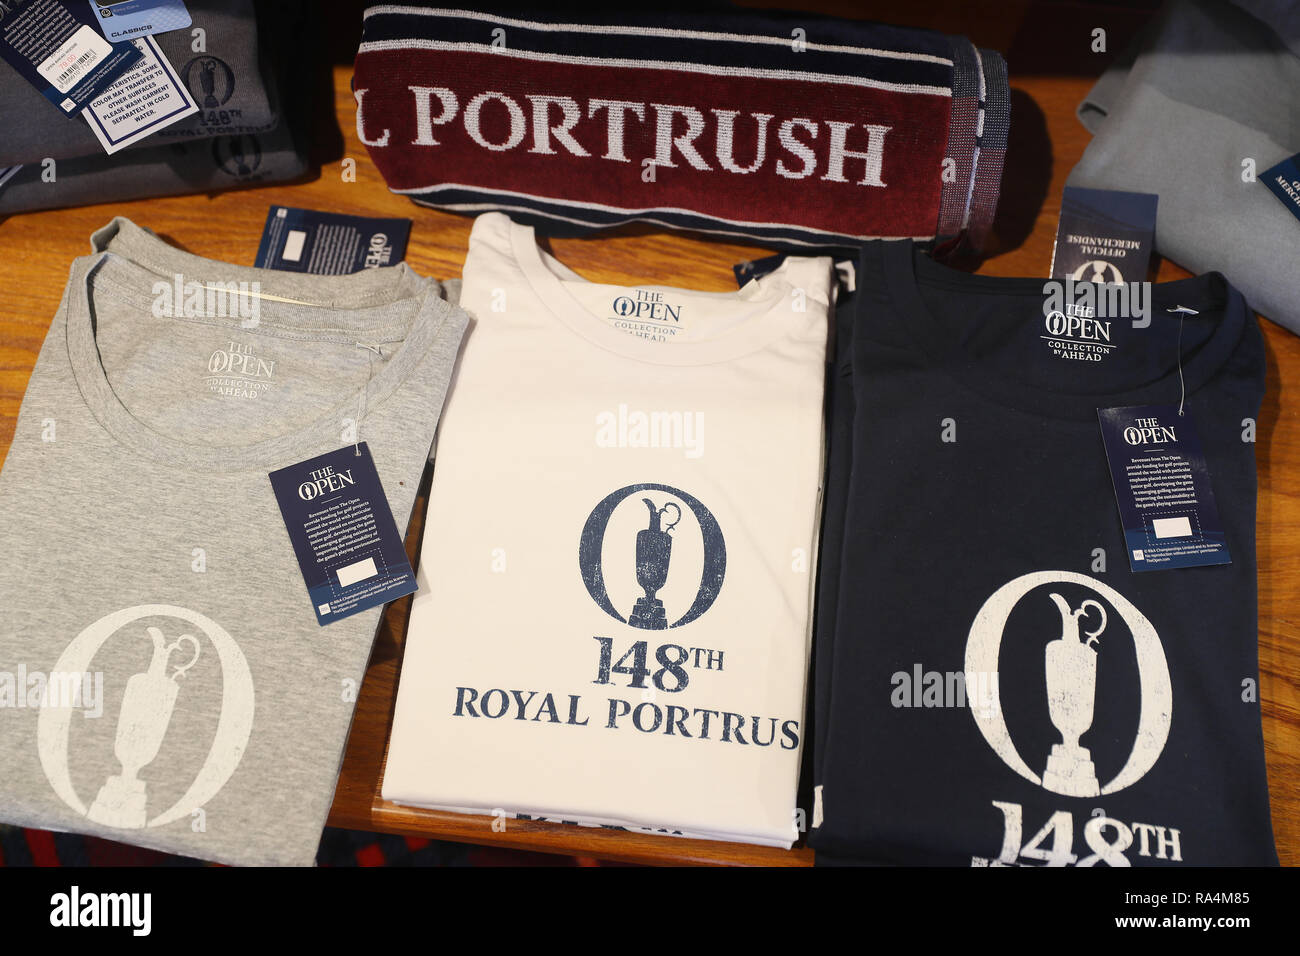 Merchandise on sale at Royal Portrush Golf Club in Co. Antrim. The organisers of golf's Open Championship have said they are staggered by the level of interest in the tournament's historic return to Northern Ireland. - Stock Image